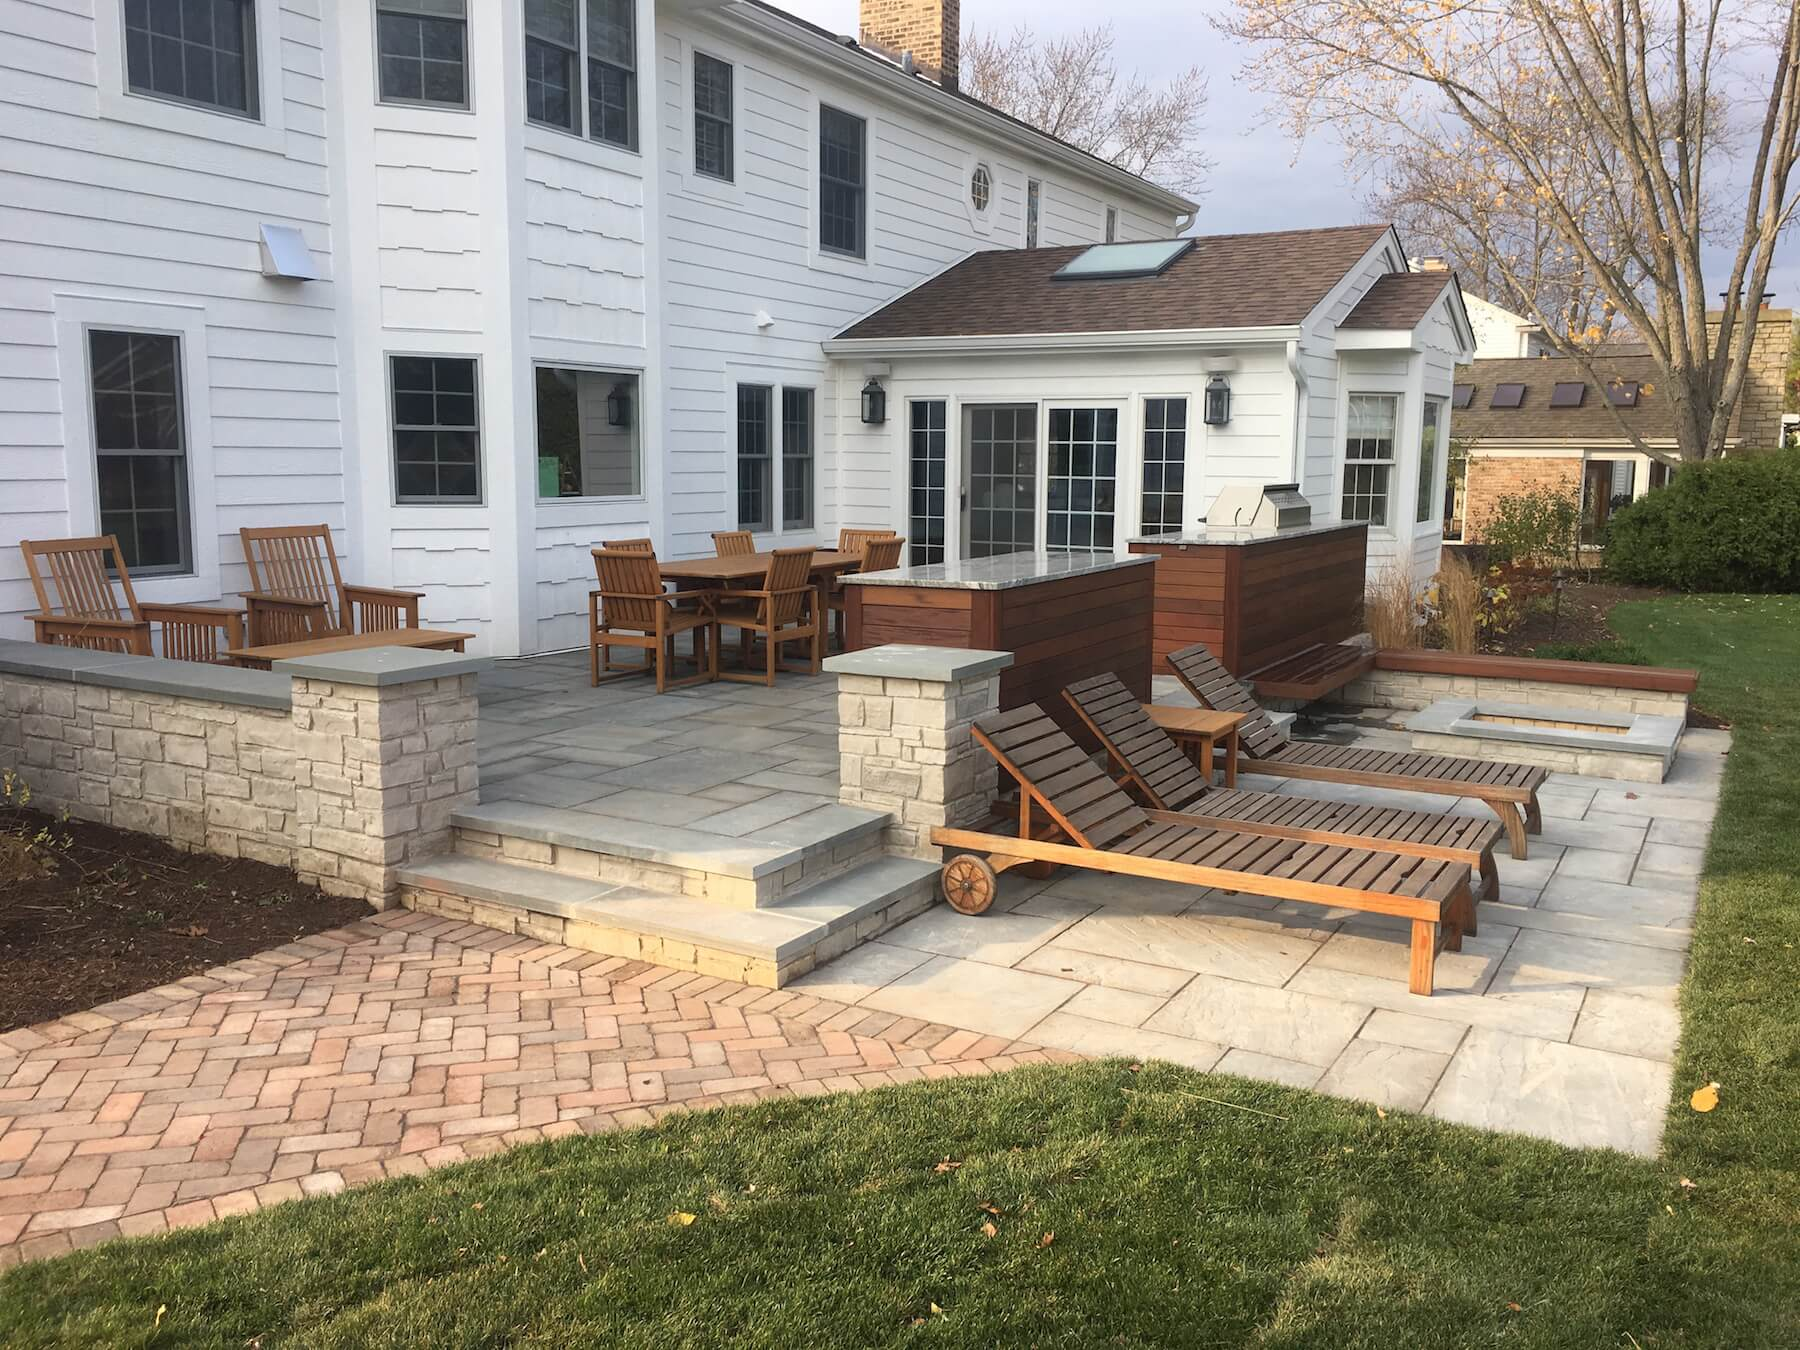 Stone Paver Patio - Denver - Roof Decks, Pergolas, and ... on Yard Paver Ideas  id=91261